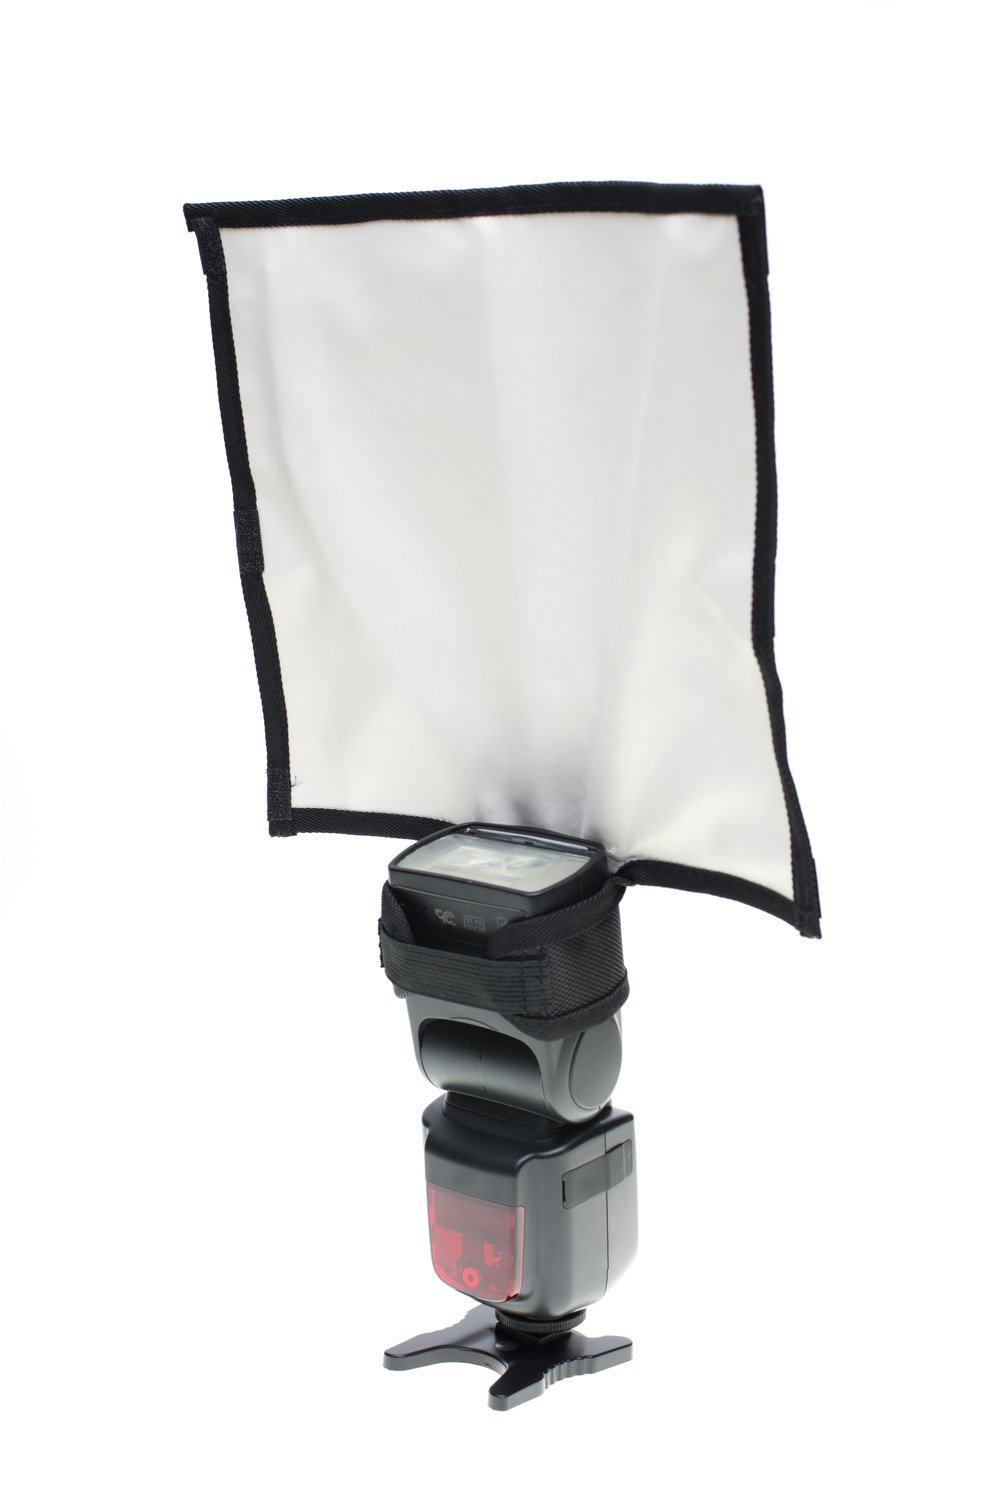 Fovitec - 1x Photography Speedlight Reflector Bounce Card - [Universal Fitment][Lightweight][Easy Set-Up][Travel Friendly]